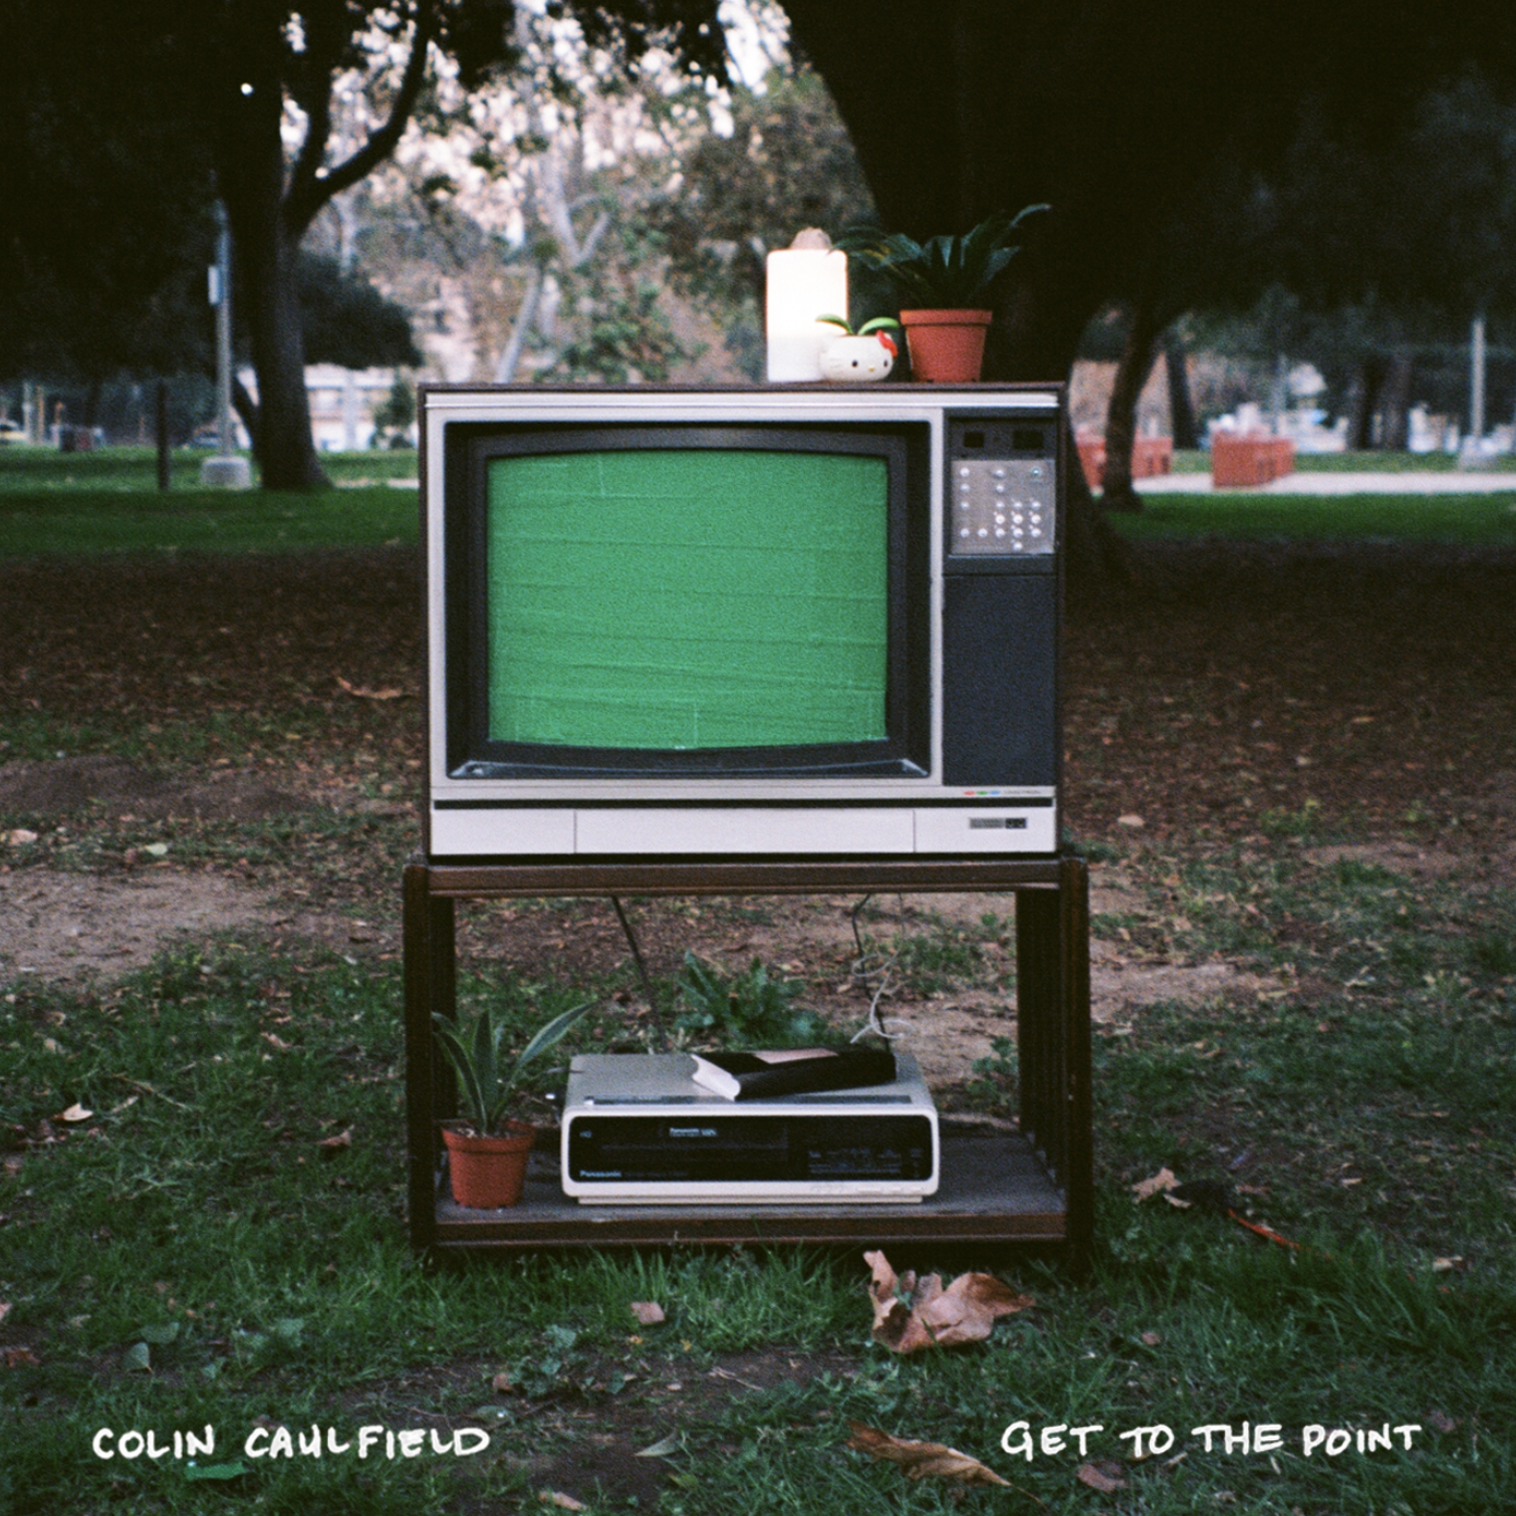 GET TO THE POINT- COLIN CAULFIELD (SINGLE ARTWORK)